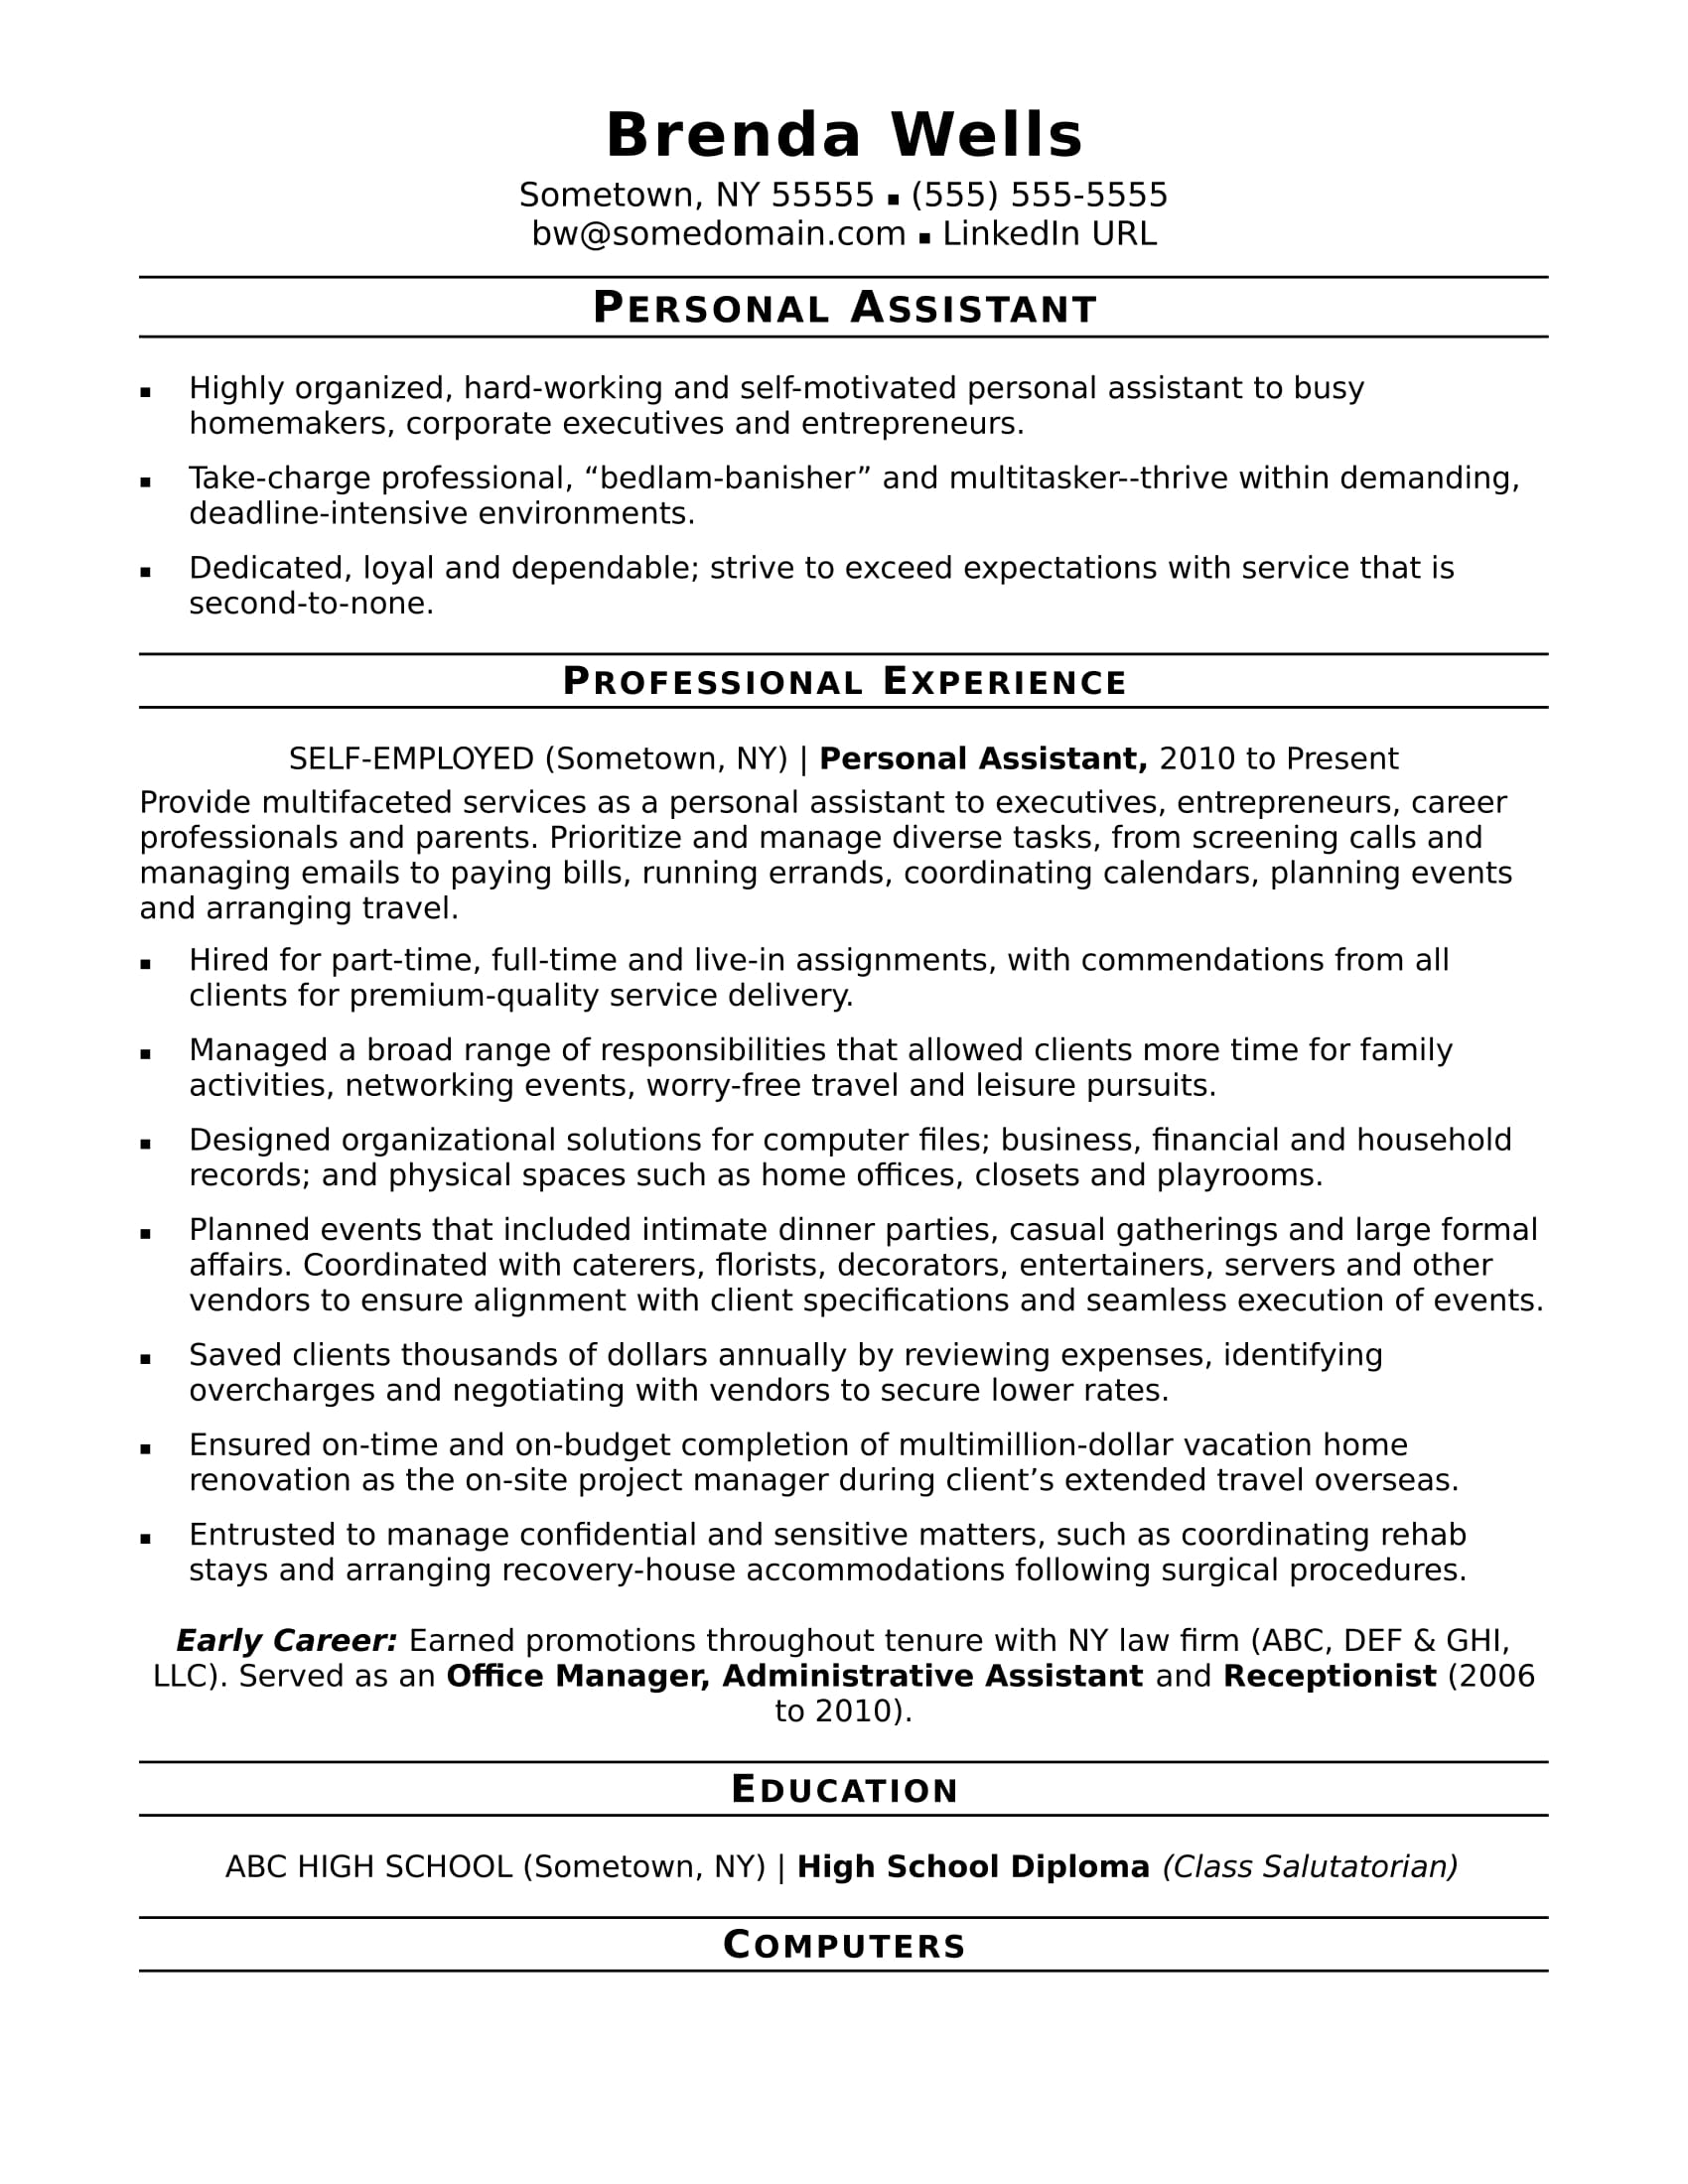 Sample Executive Assistant Resume Objective